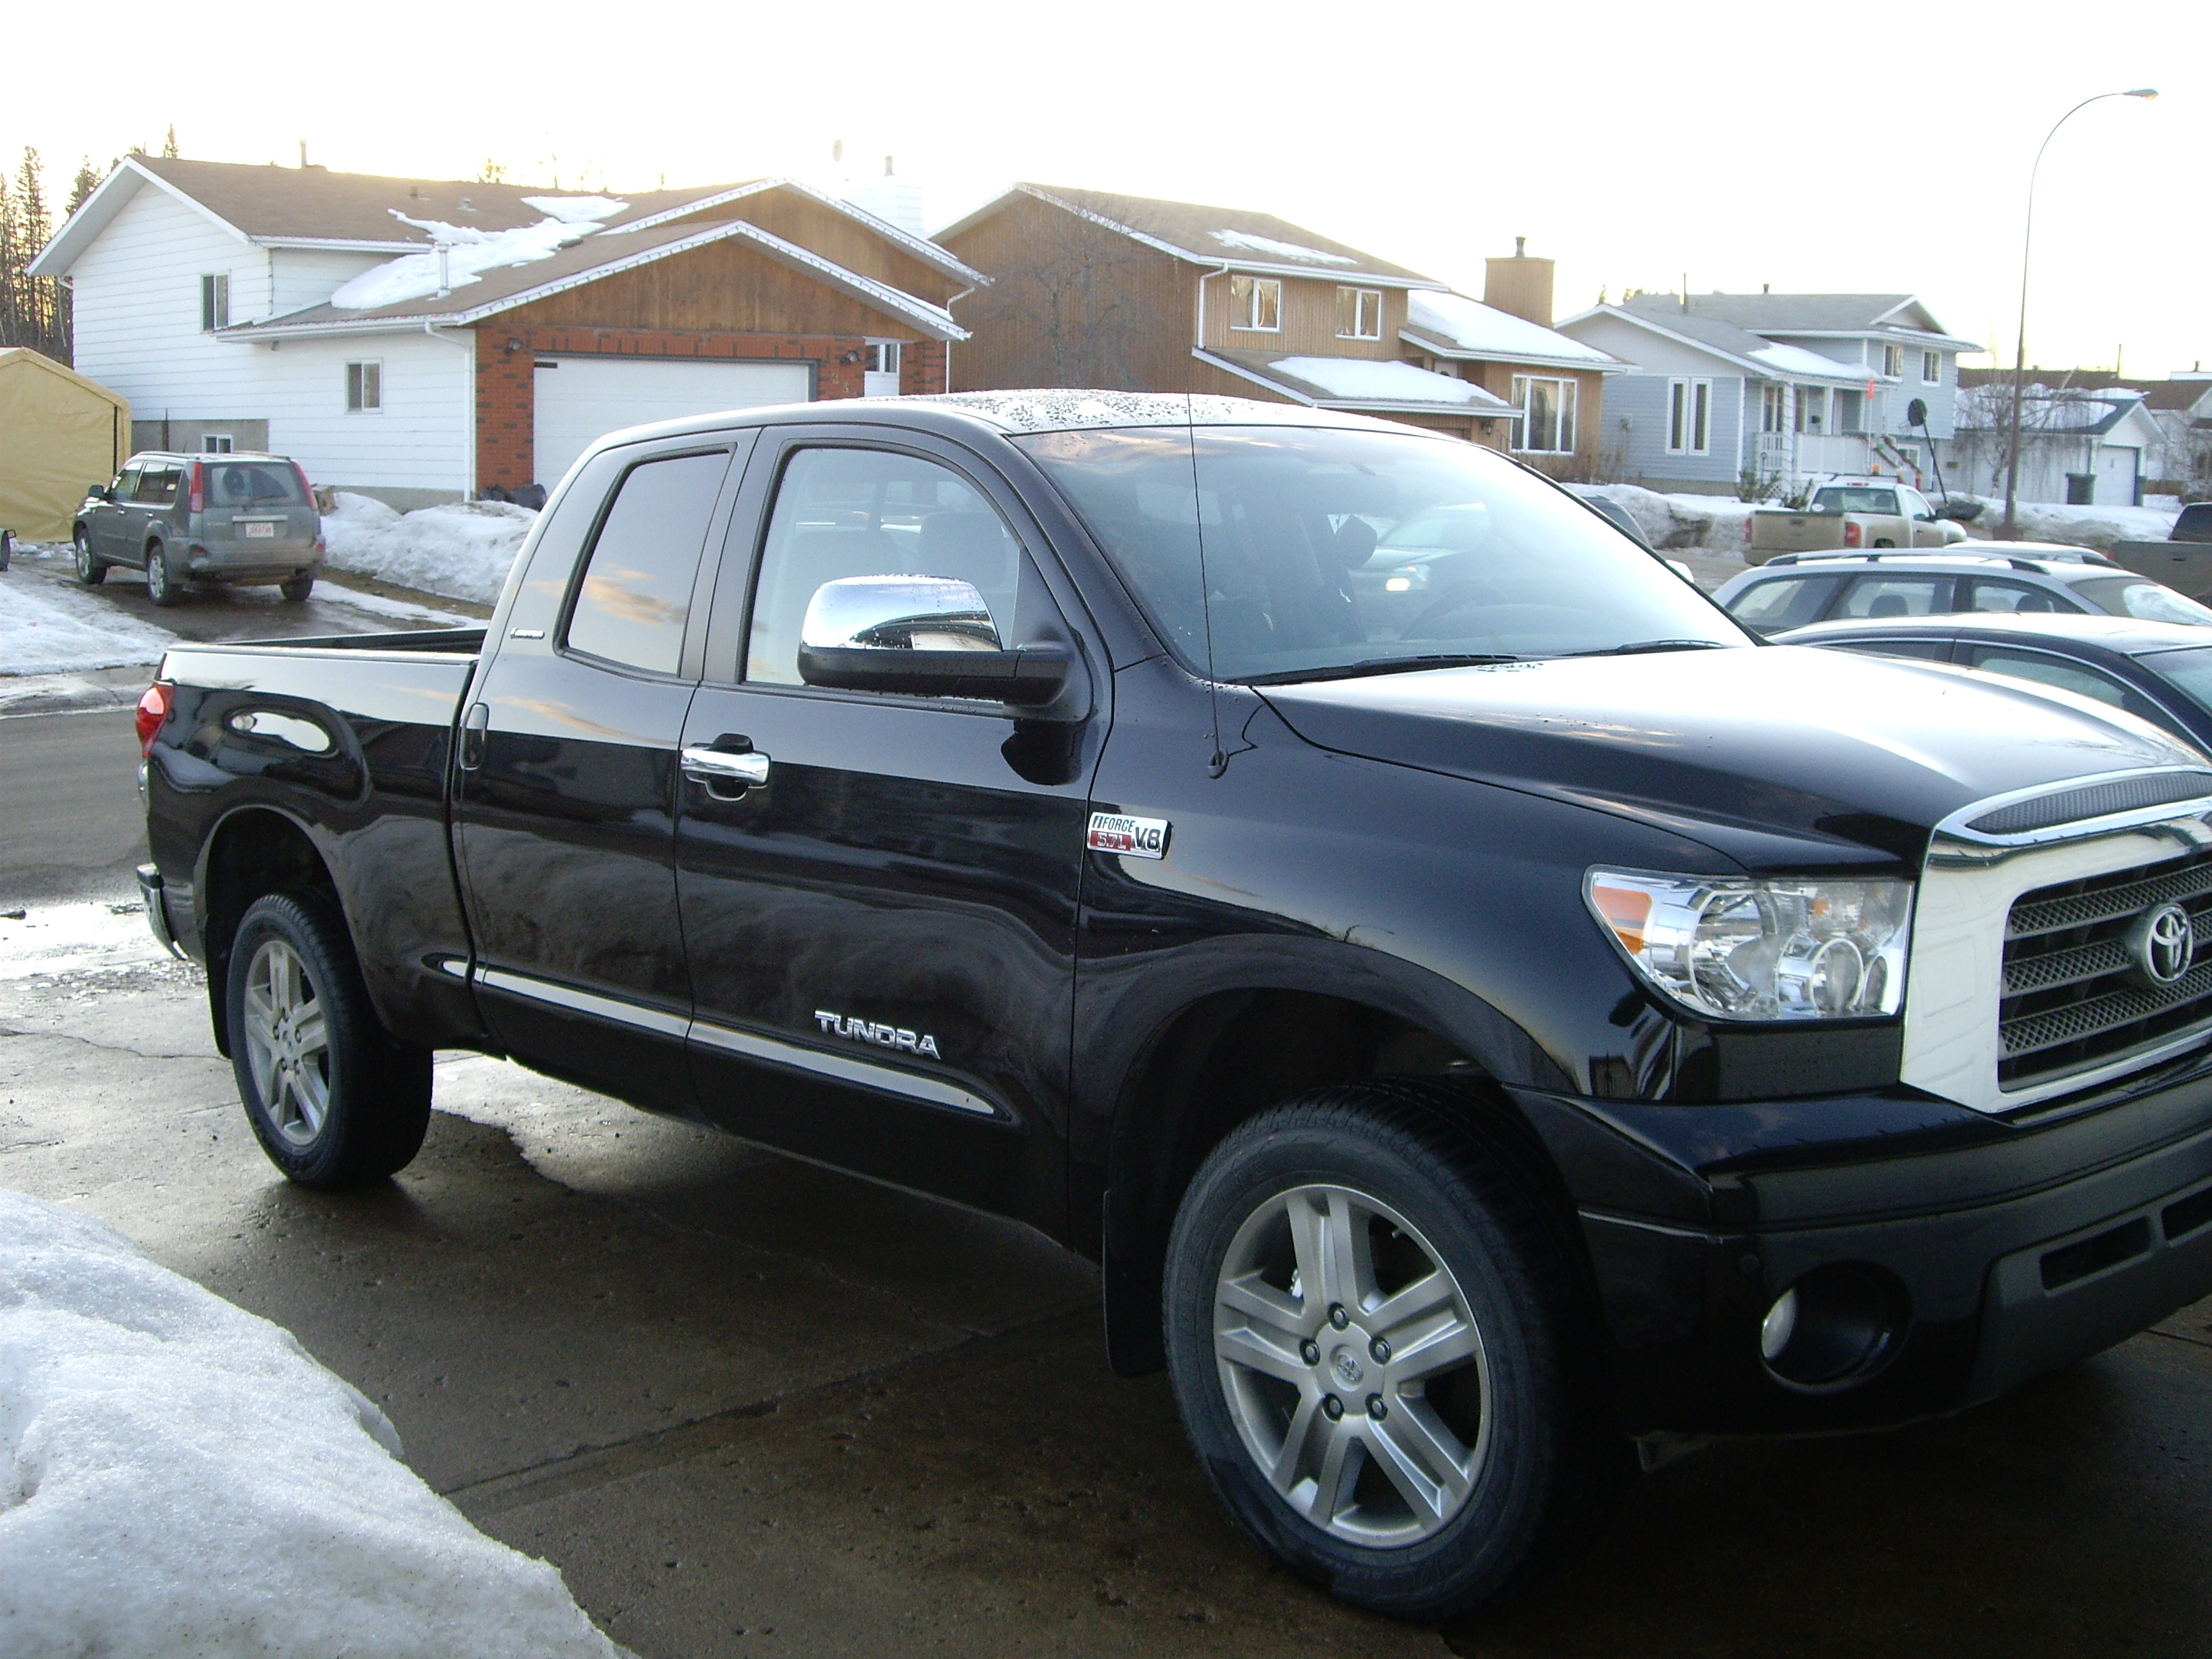 chad07 39 s 2009 toyota tundra double cab limited in fort mcmurray ab. Black Bedroom Furniture Sets. Home Design Ideas